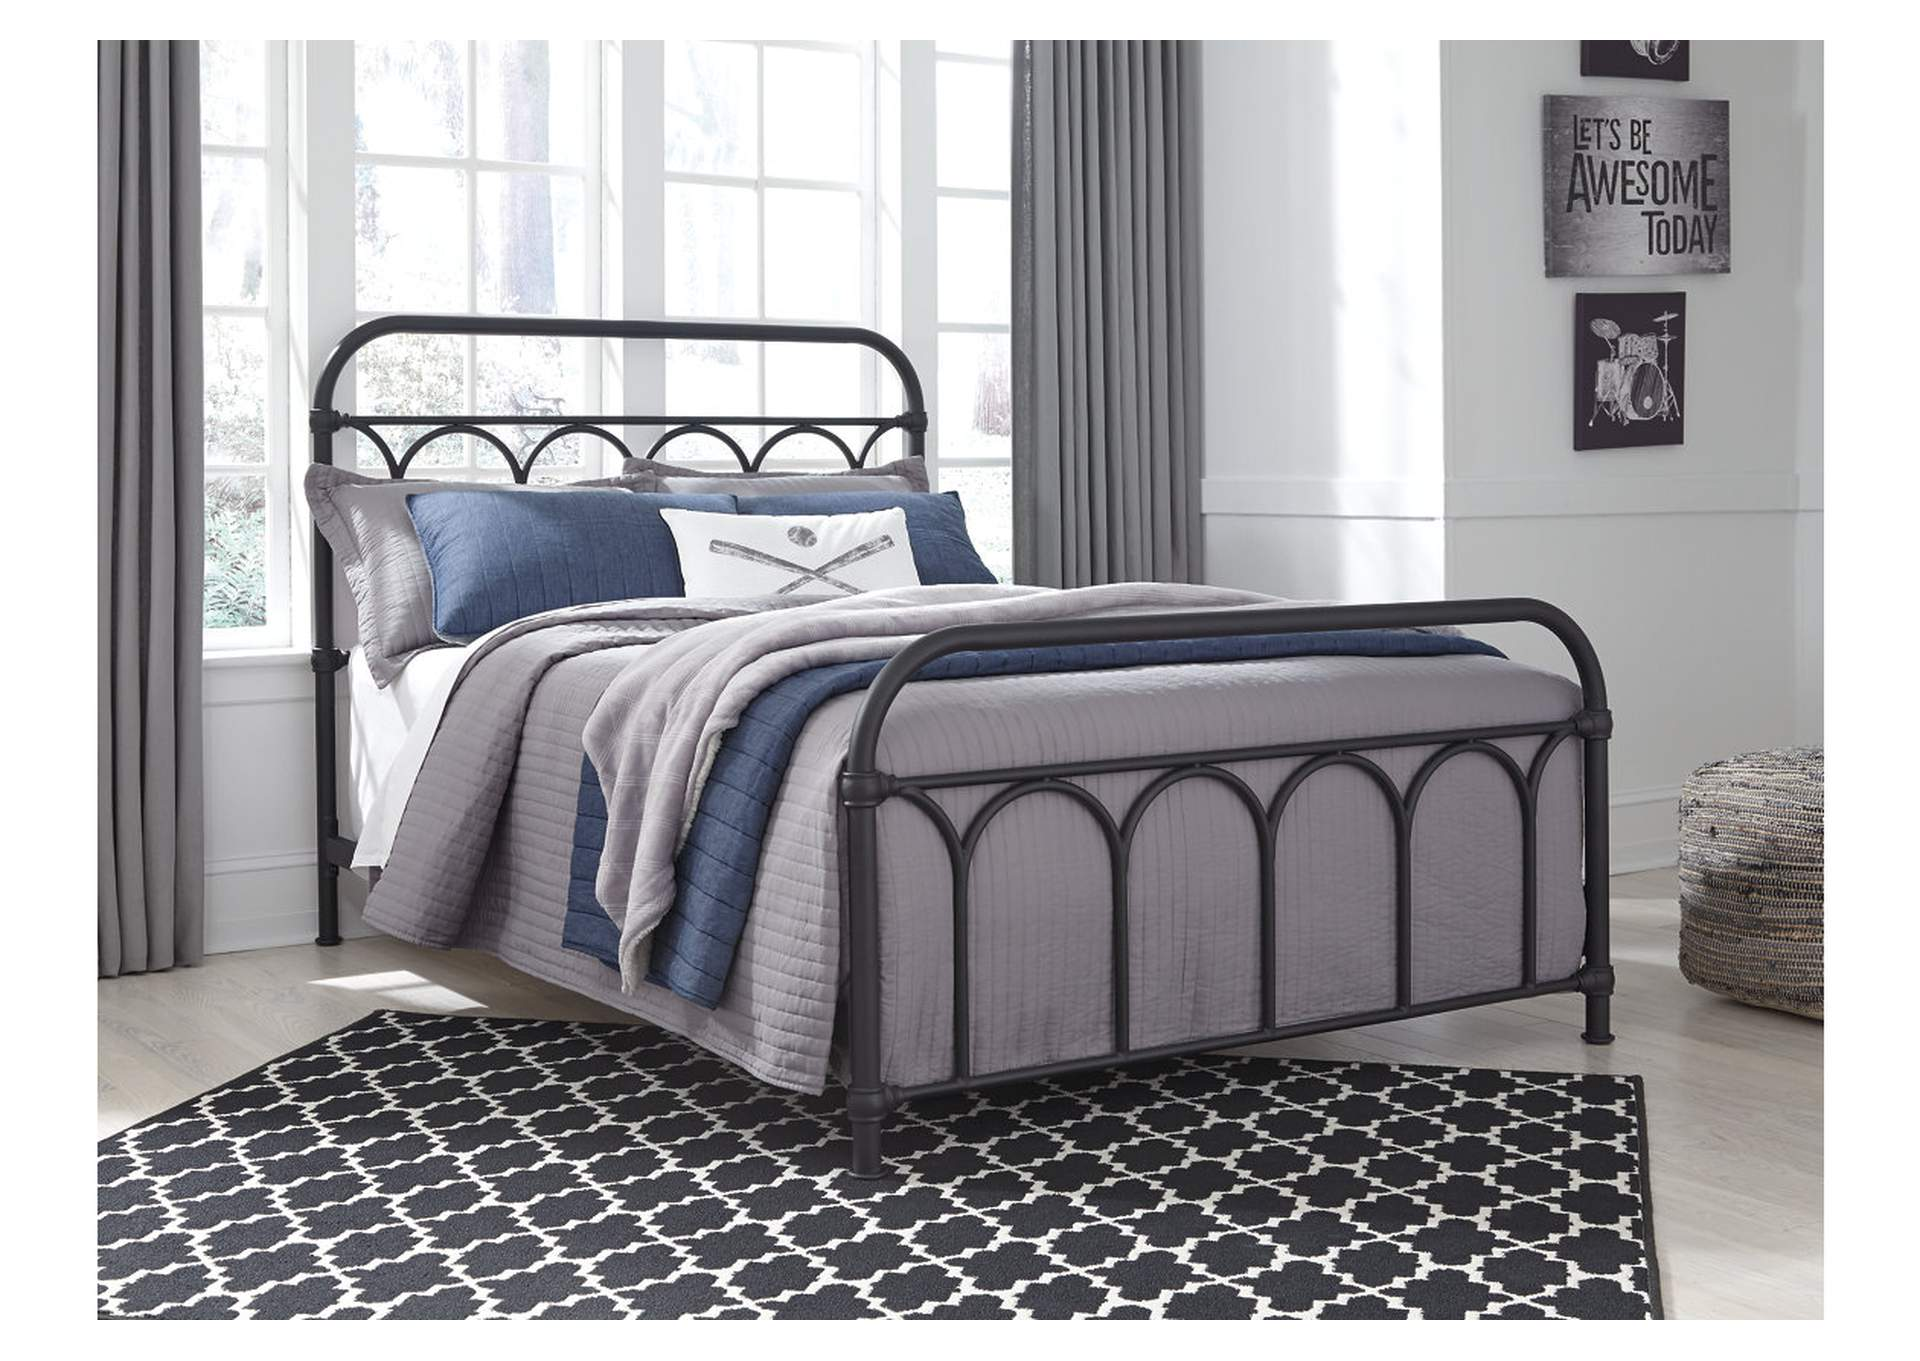 Nashburg Black Full Metal Bed,Signature Design By Ashley